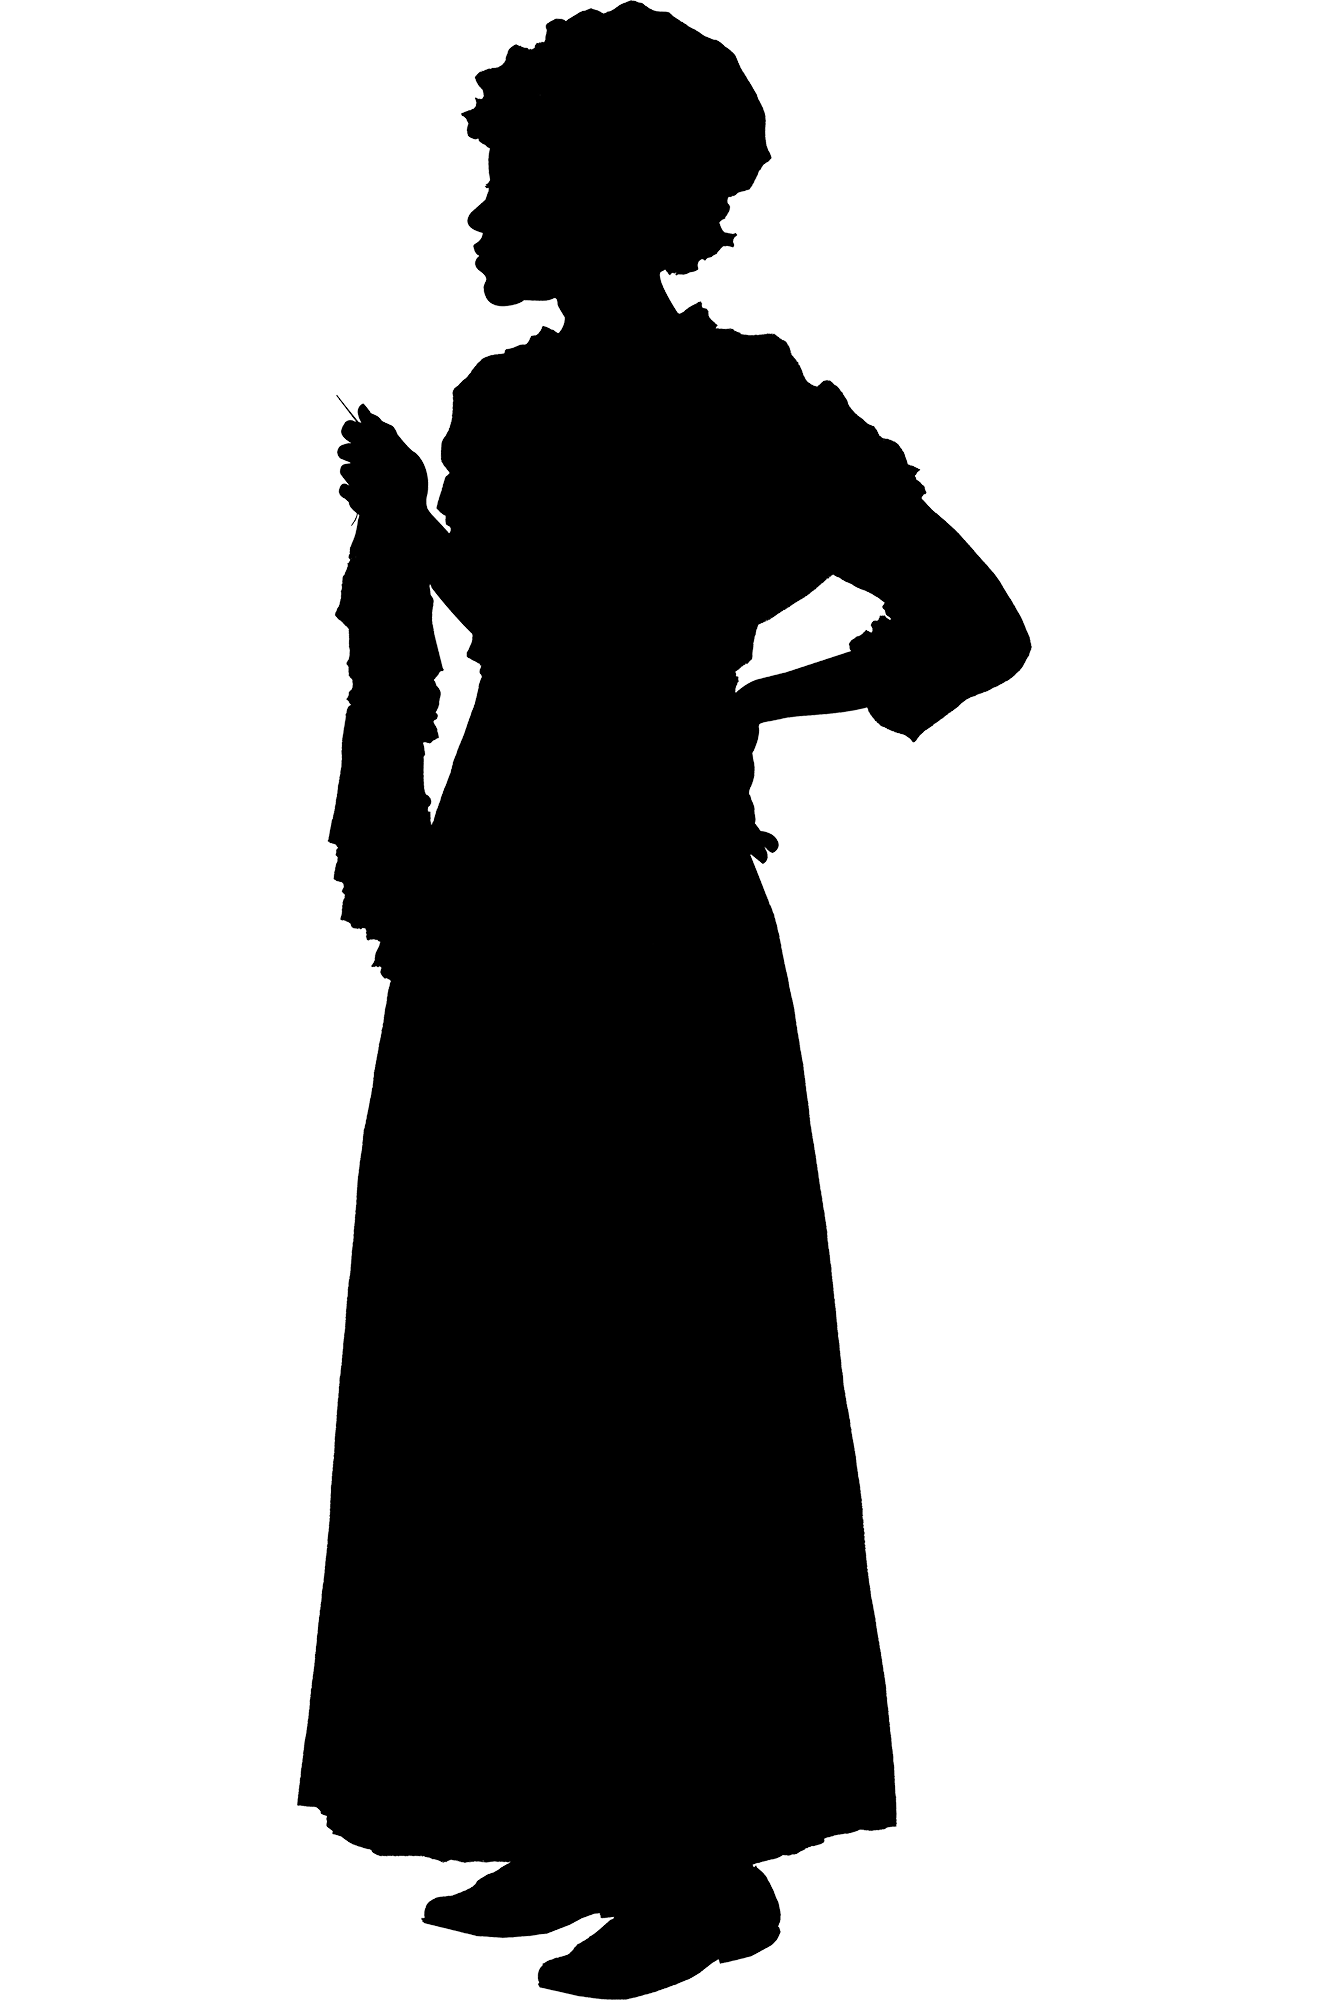 Silhouette of Ona Judge